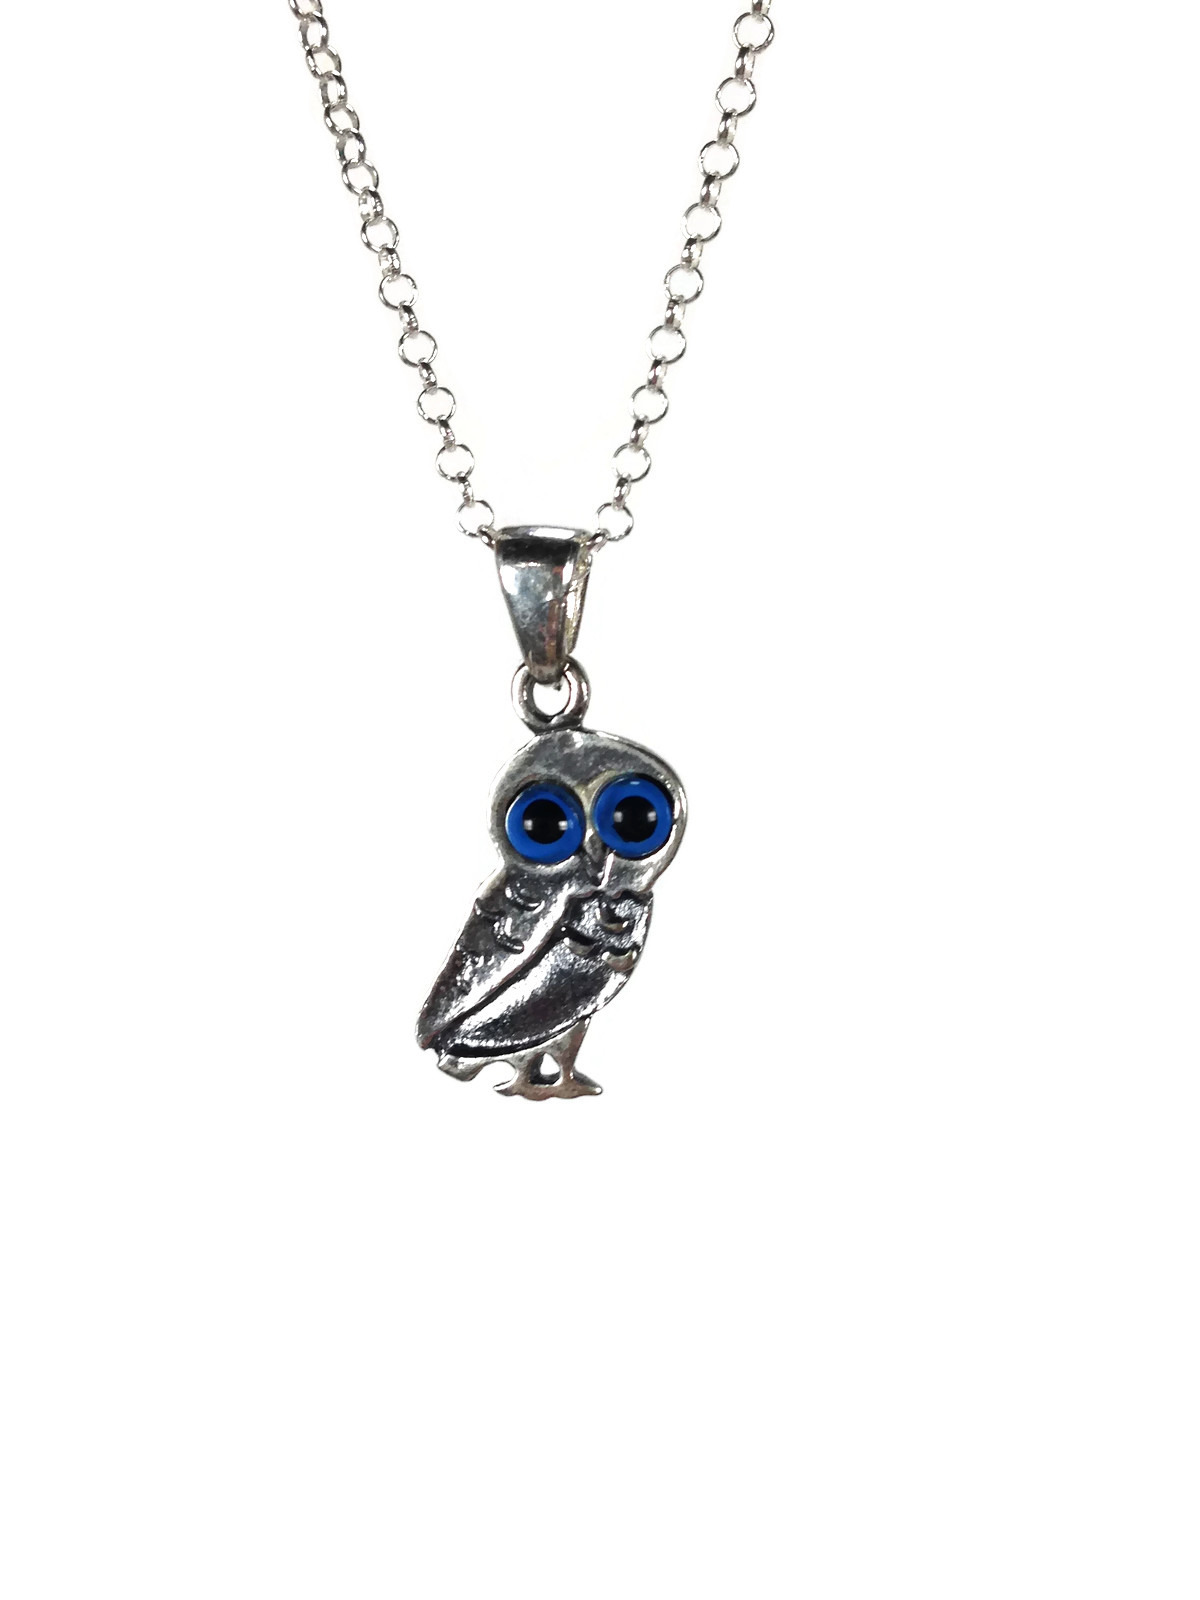 Owl Evil eye necklace - Dark Blue eye - 925 sterling silver